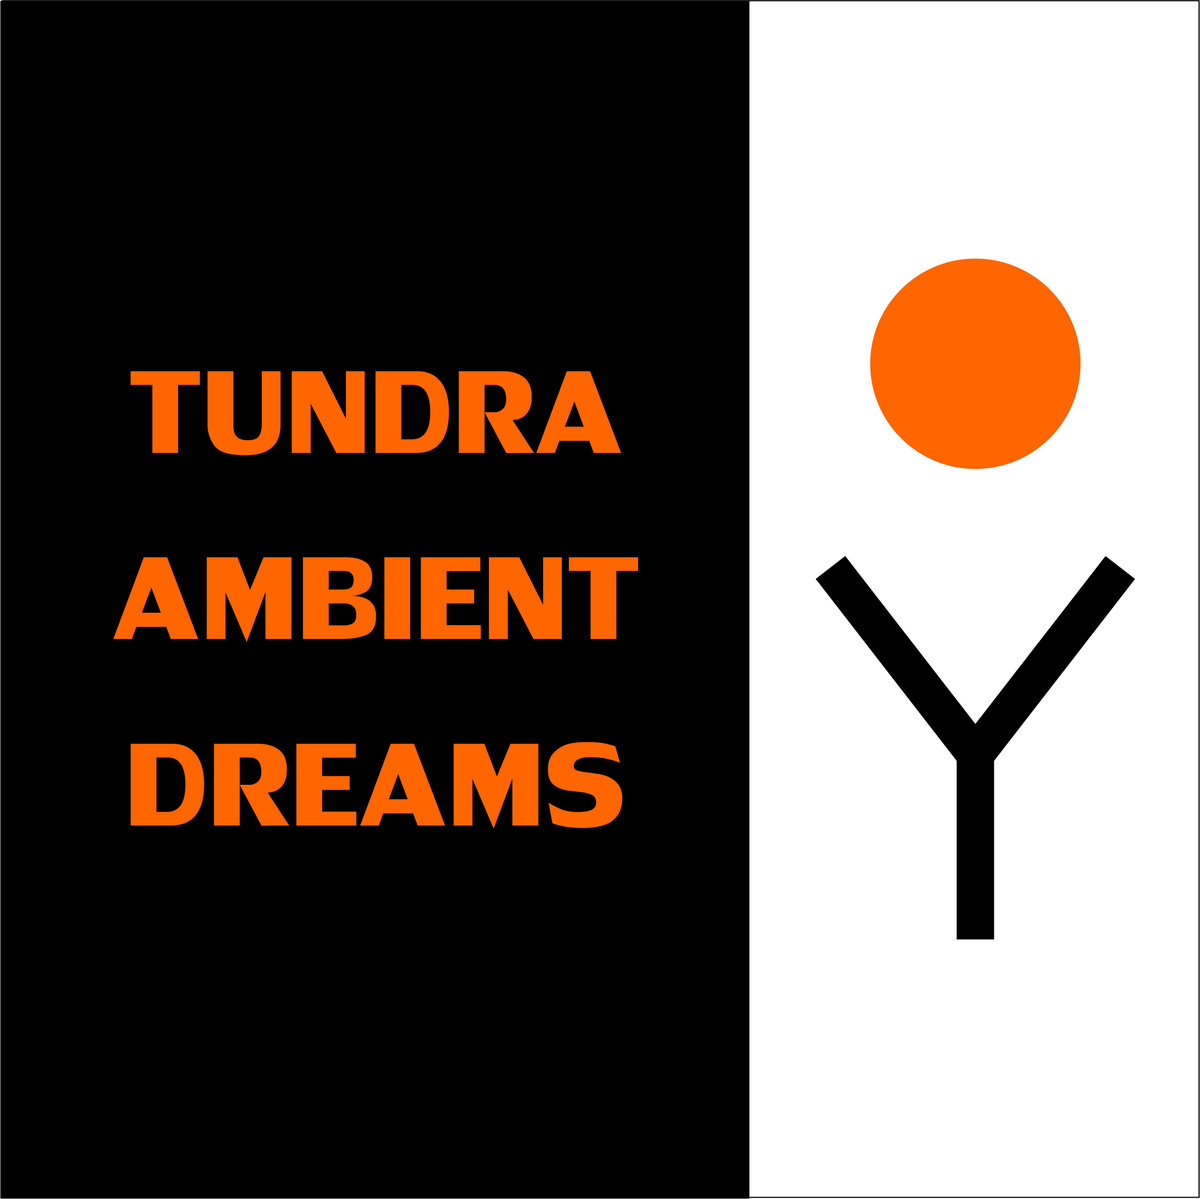 Ellipsis III - Tundra.Ambient.Dreams. Vol.3 @ 'Ellipsis III - Tundra.Ambient.Dreams. Vol.3' album (electronic, ambient)